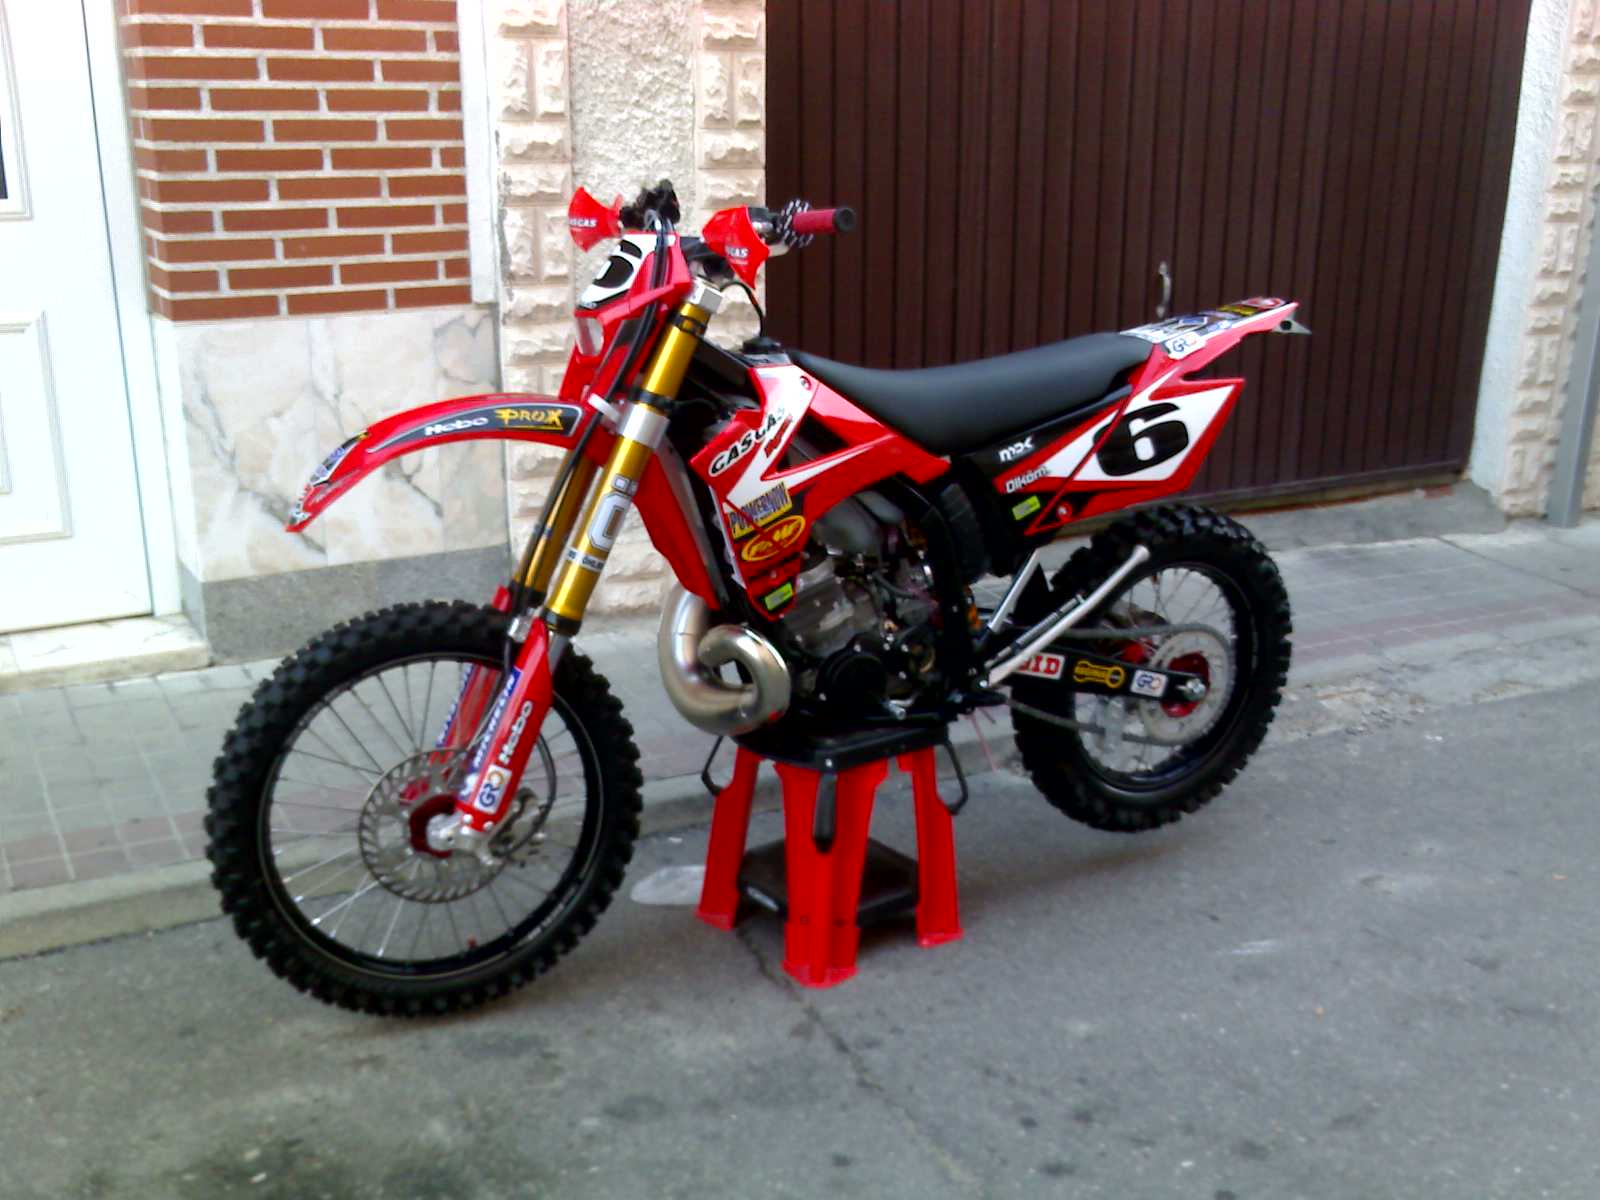 GAS GAS SM 450 images #72130